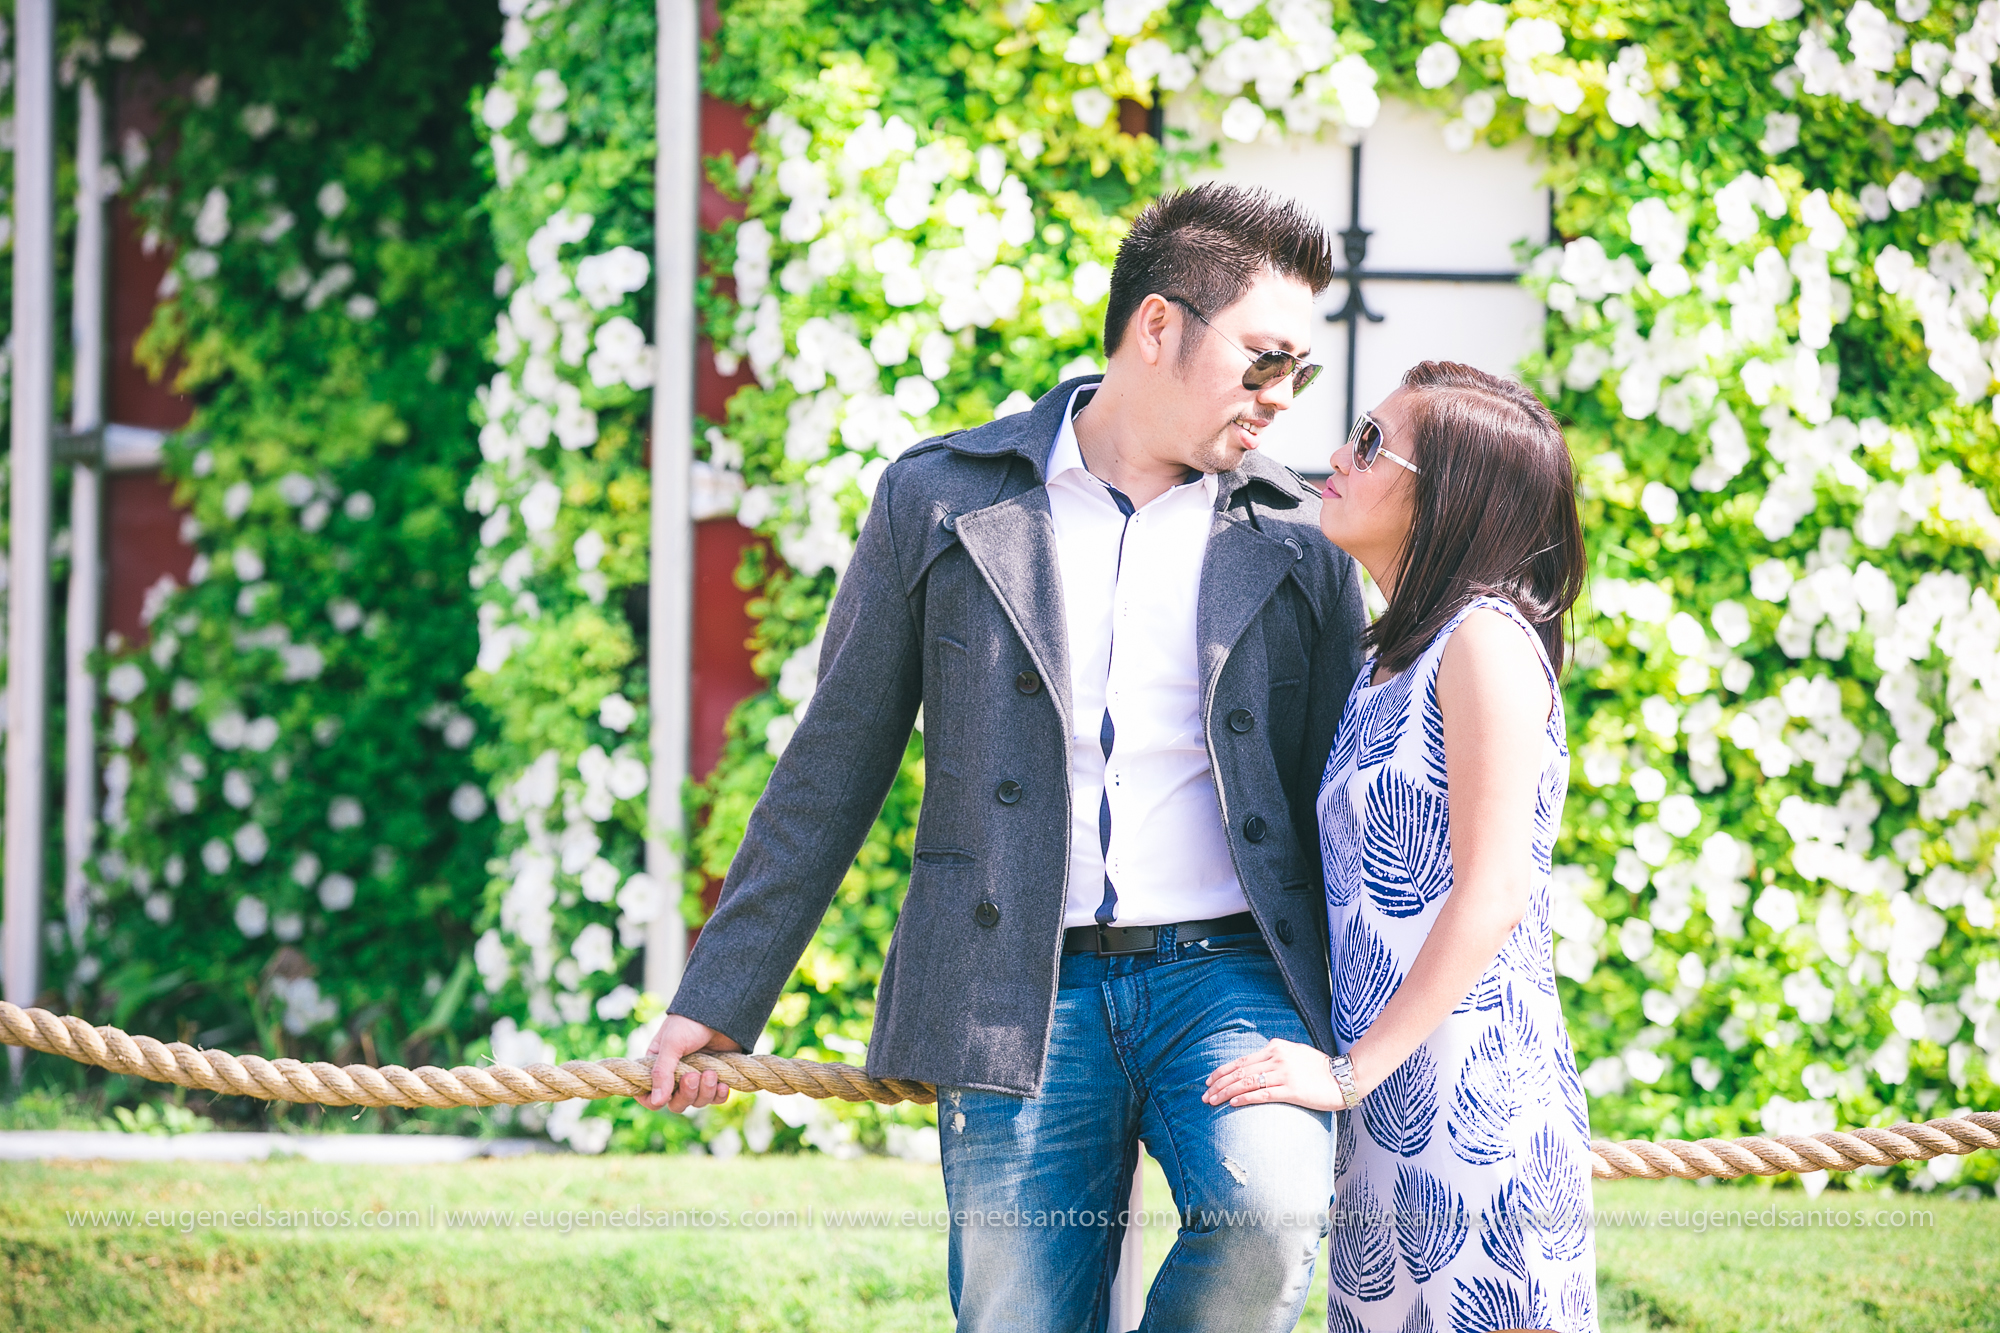 ES - Dubai Wedding Photography DR-22.jpg